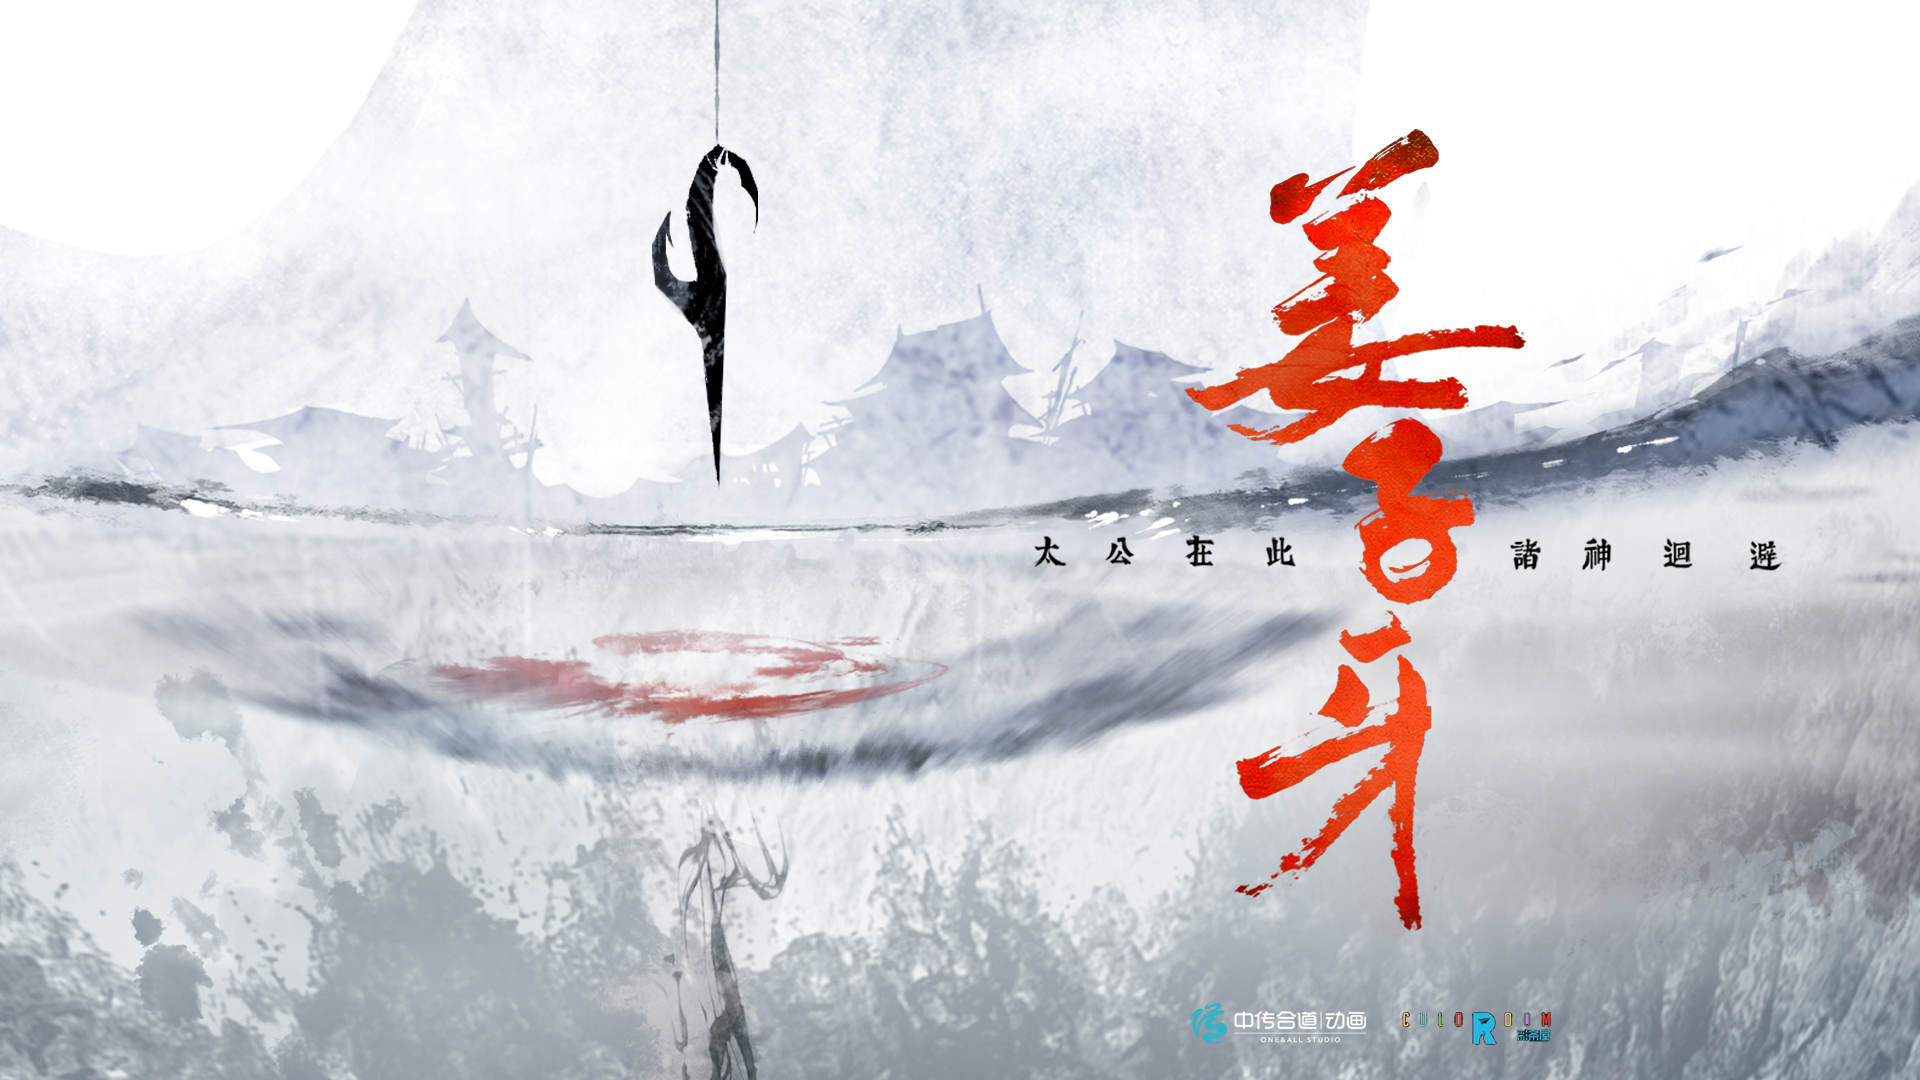 """【The film """"Jiang Ziya"""" reveals a new concept poster】"""